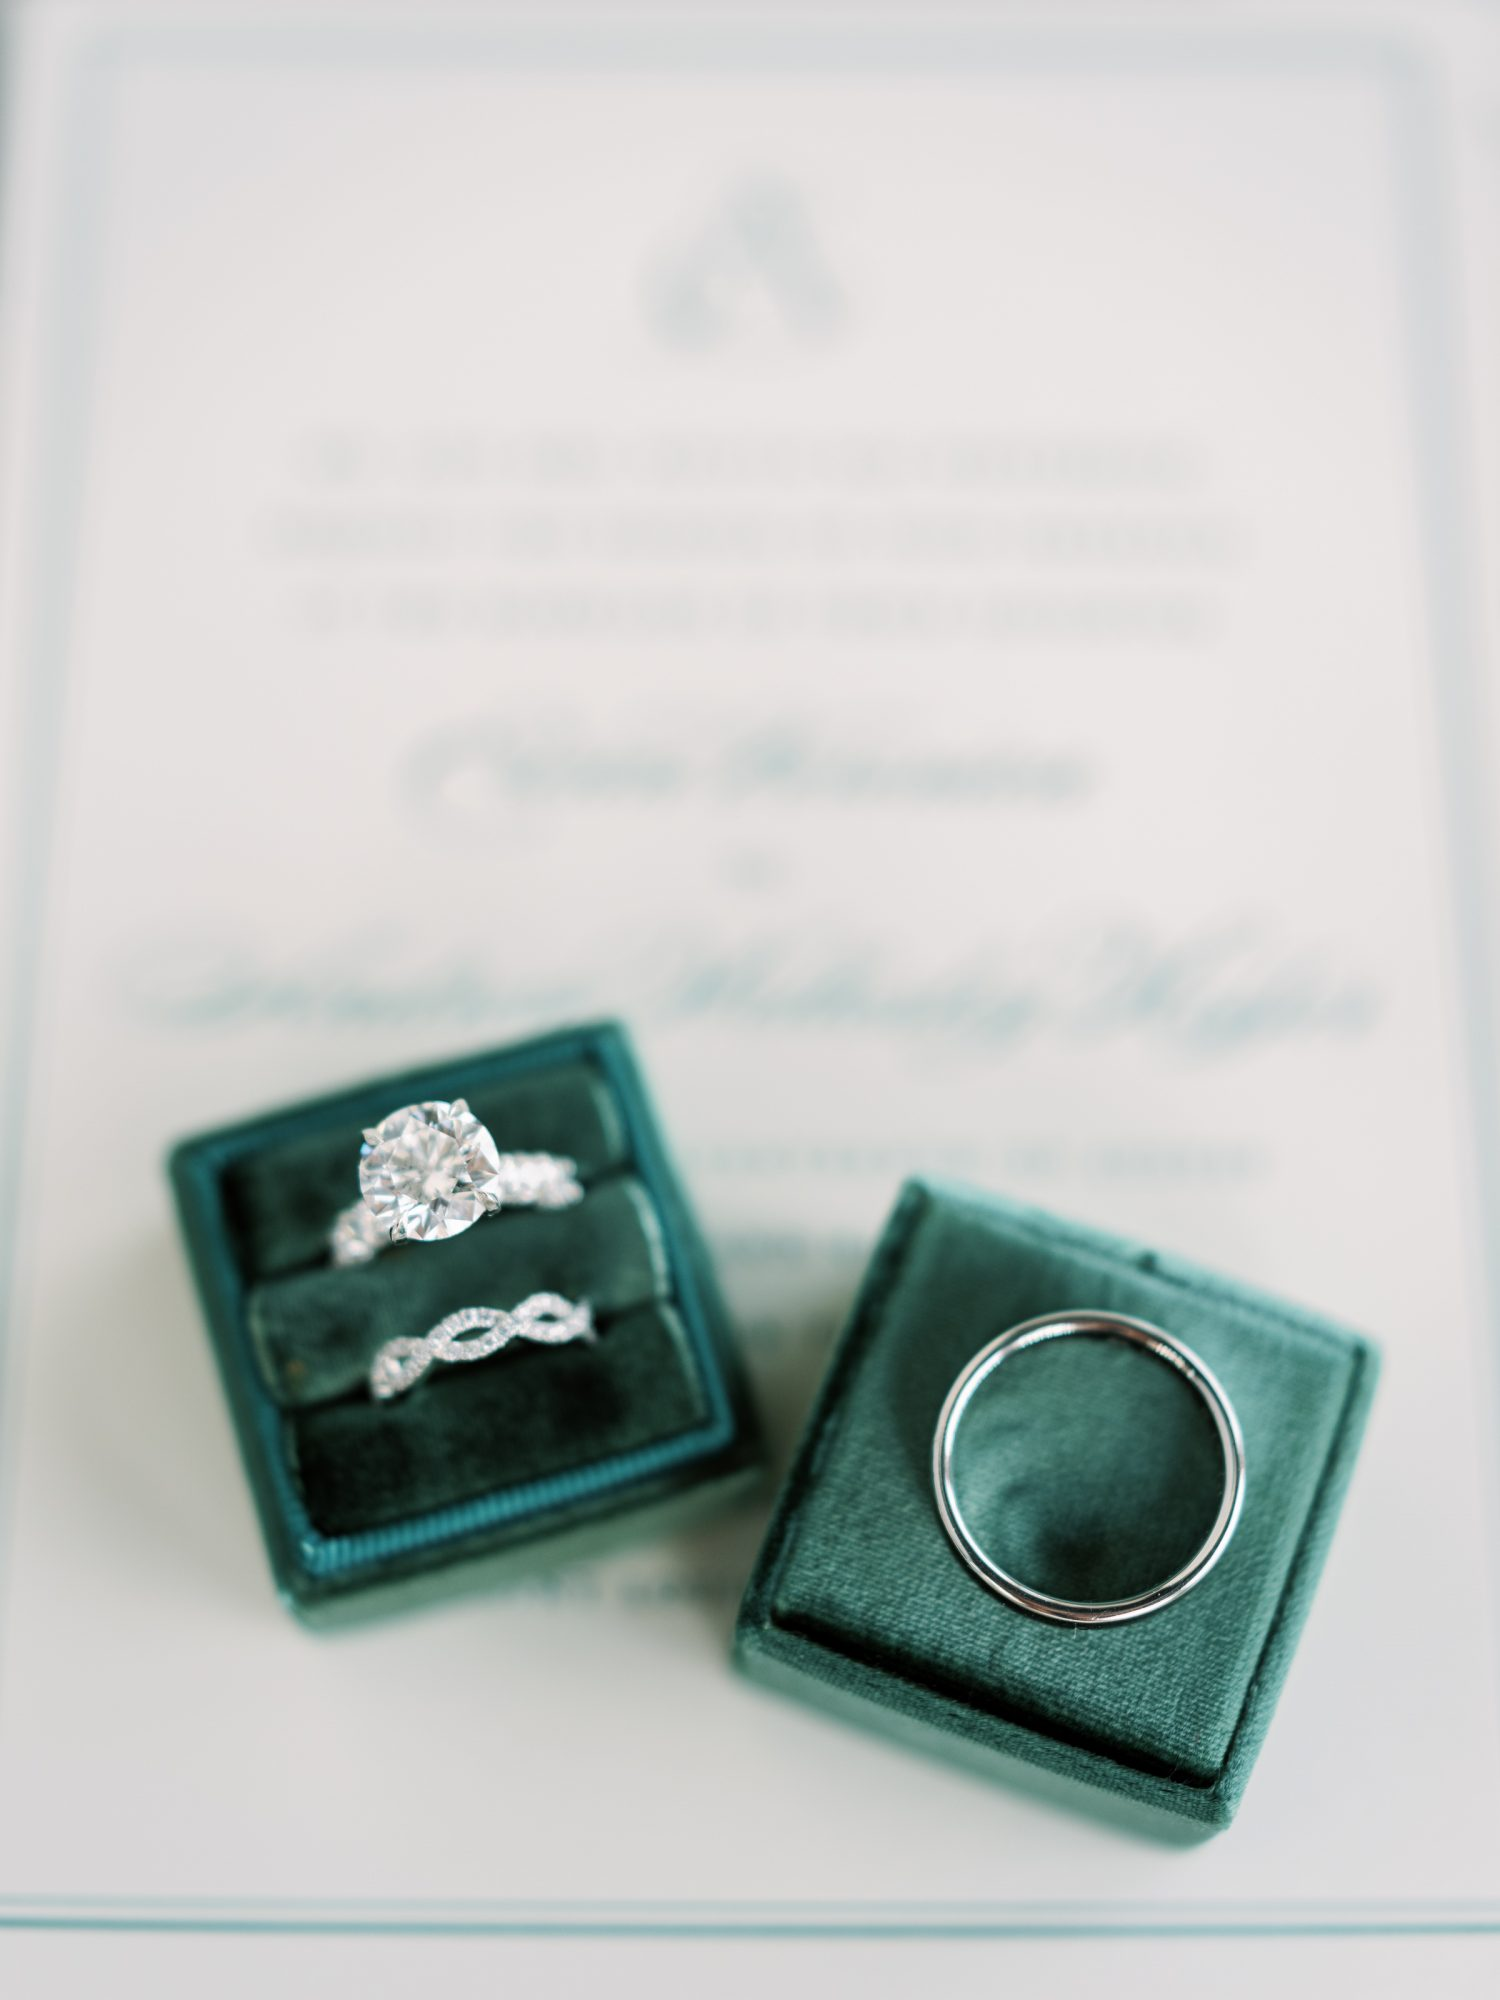 erinn andrew wedding rings in green boxes